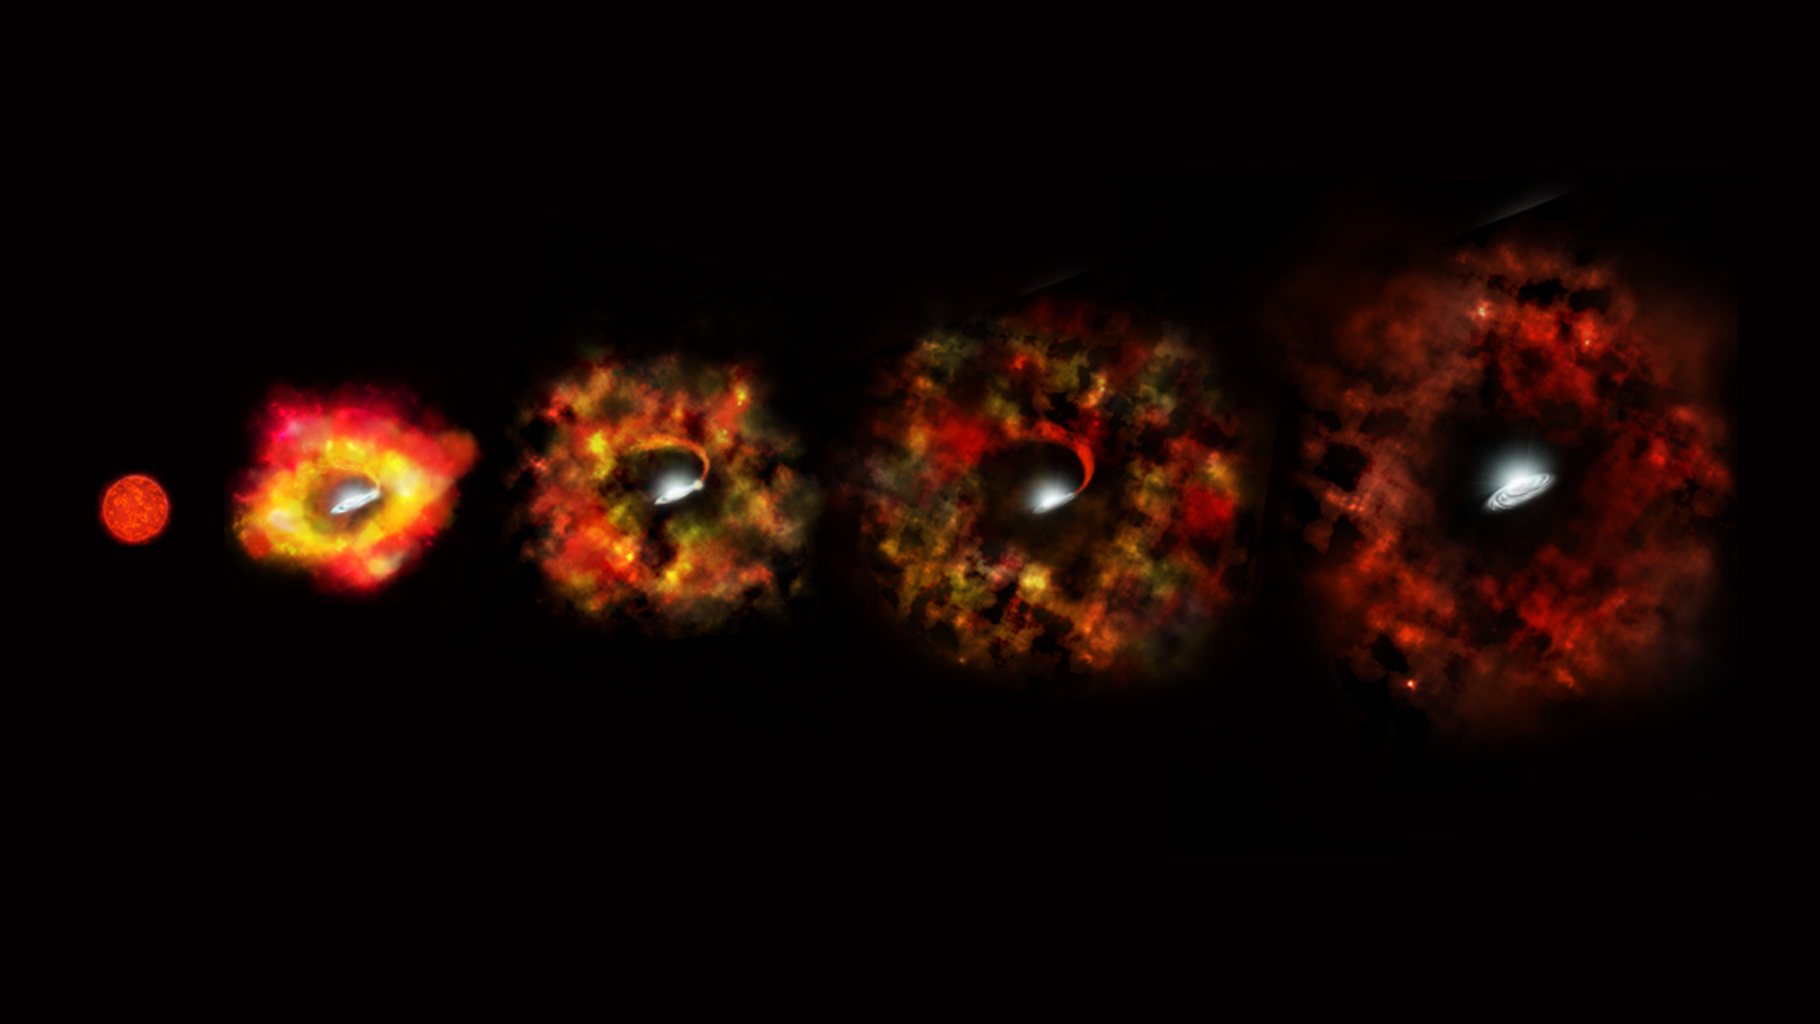 This illustration shows the final stages in the life of a supermassive star that fails to explode as a supernova, but instead implodes to form a black hole.